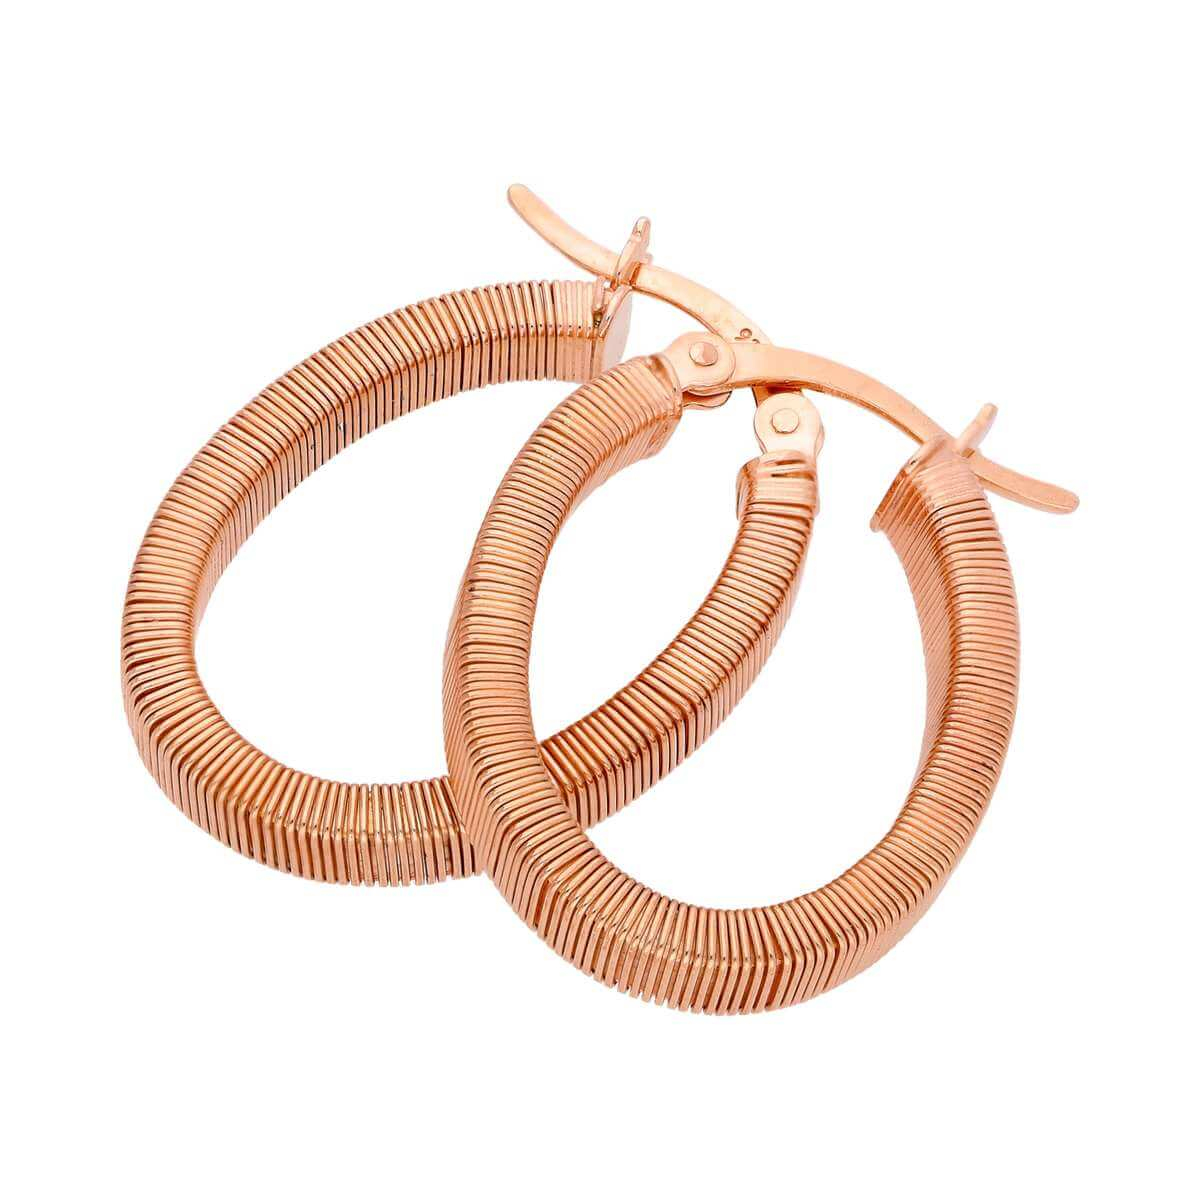 Rose Gold Plated Sterling Silver Oval Creole Hoop Earrings